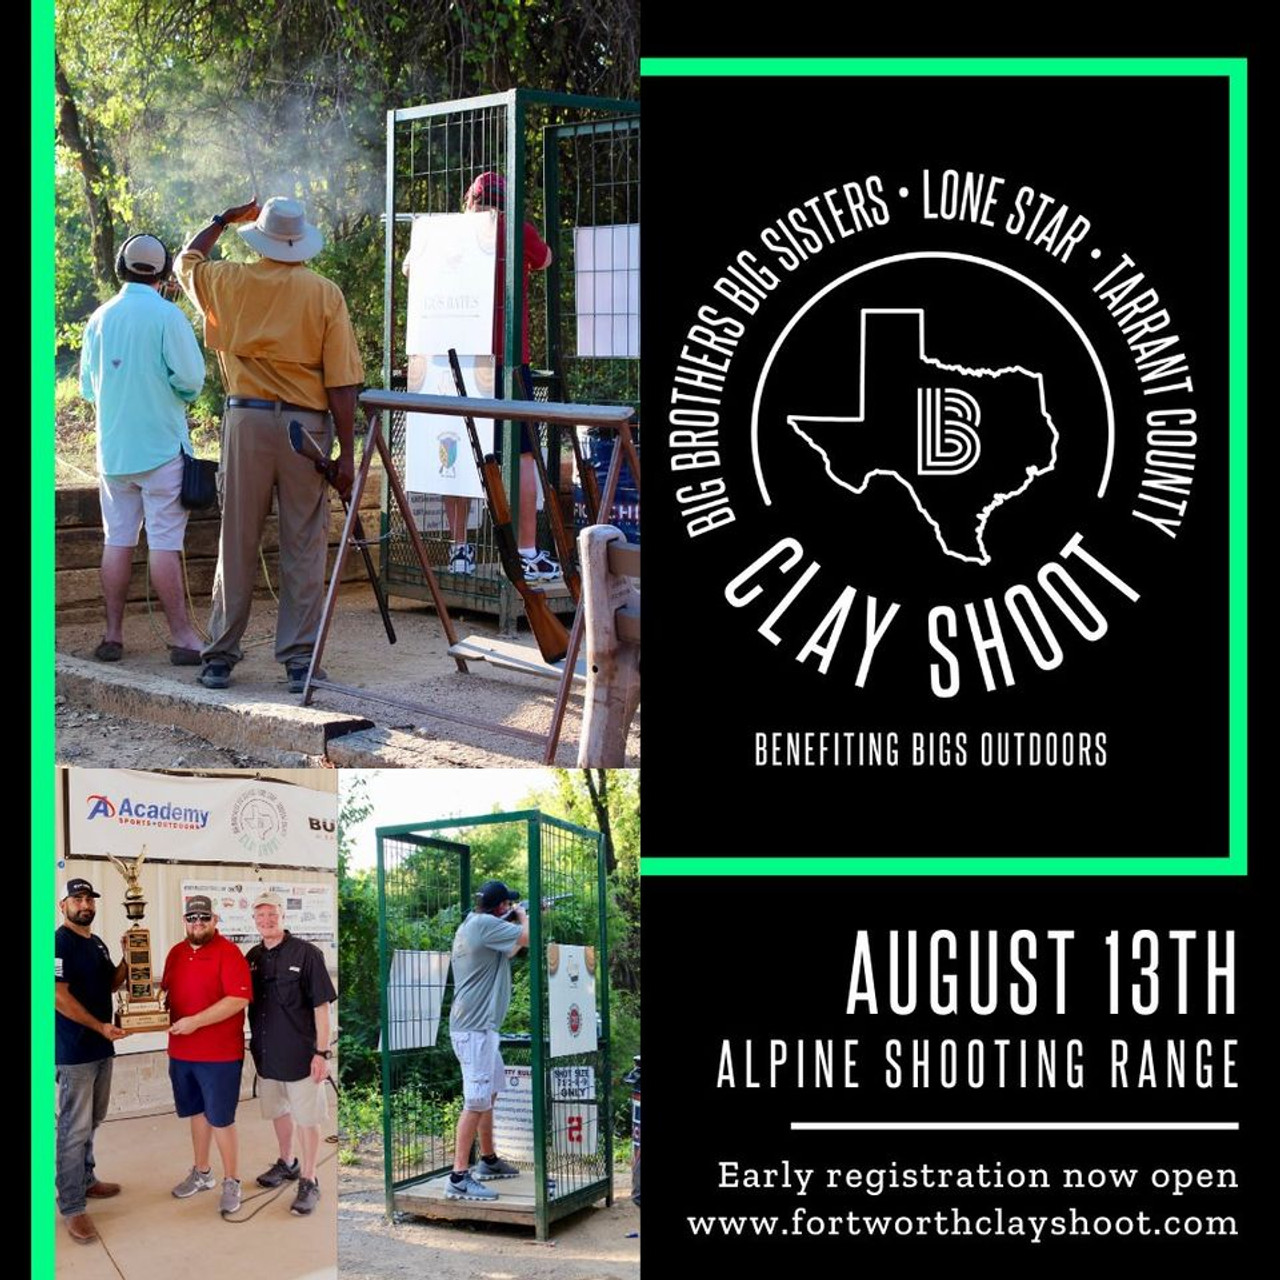 29th Annual Big Brothers Big Sisters of Tarrant County Clay Shoot - August 13, 2021